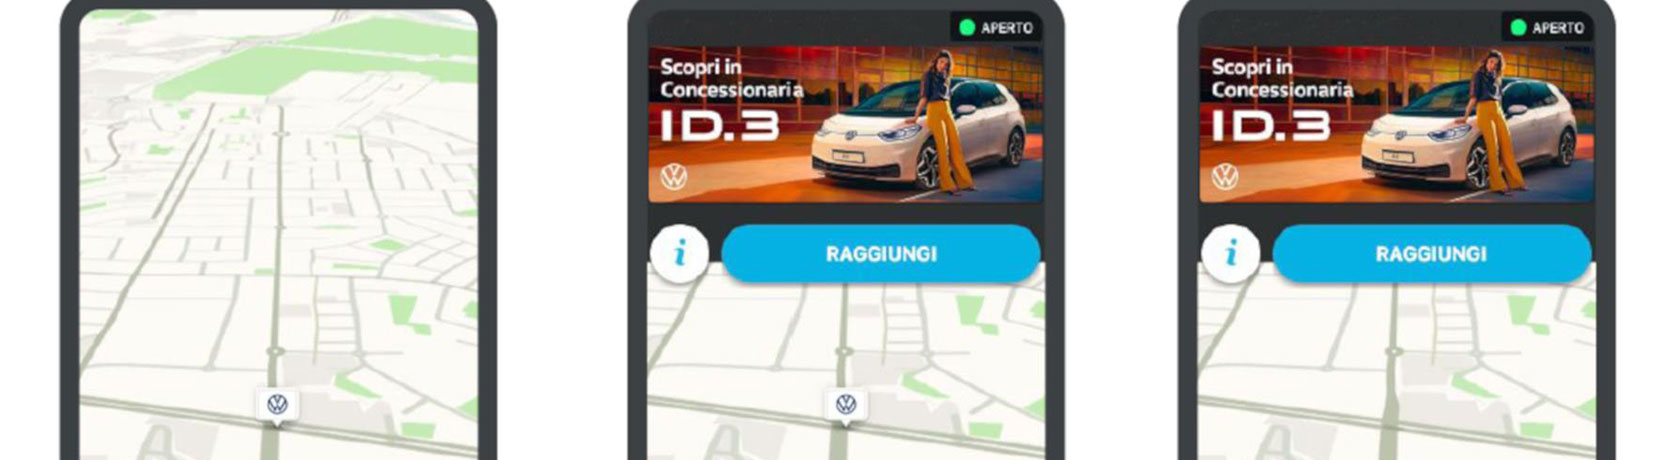 E-mobility: Italian charging points mapped with Waze and Volkswagen